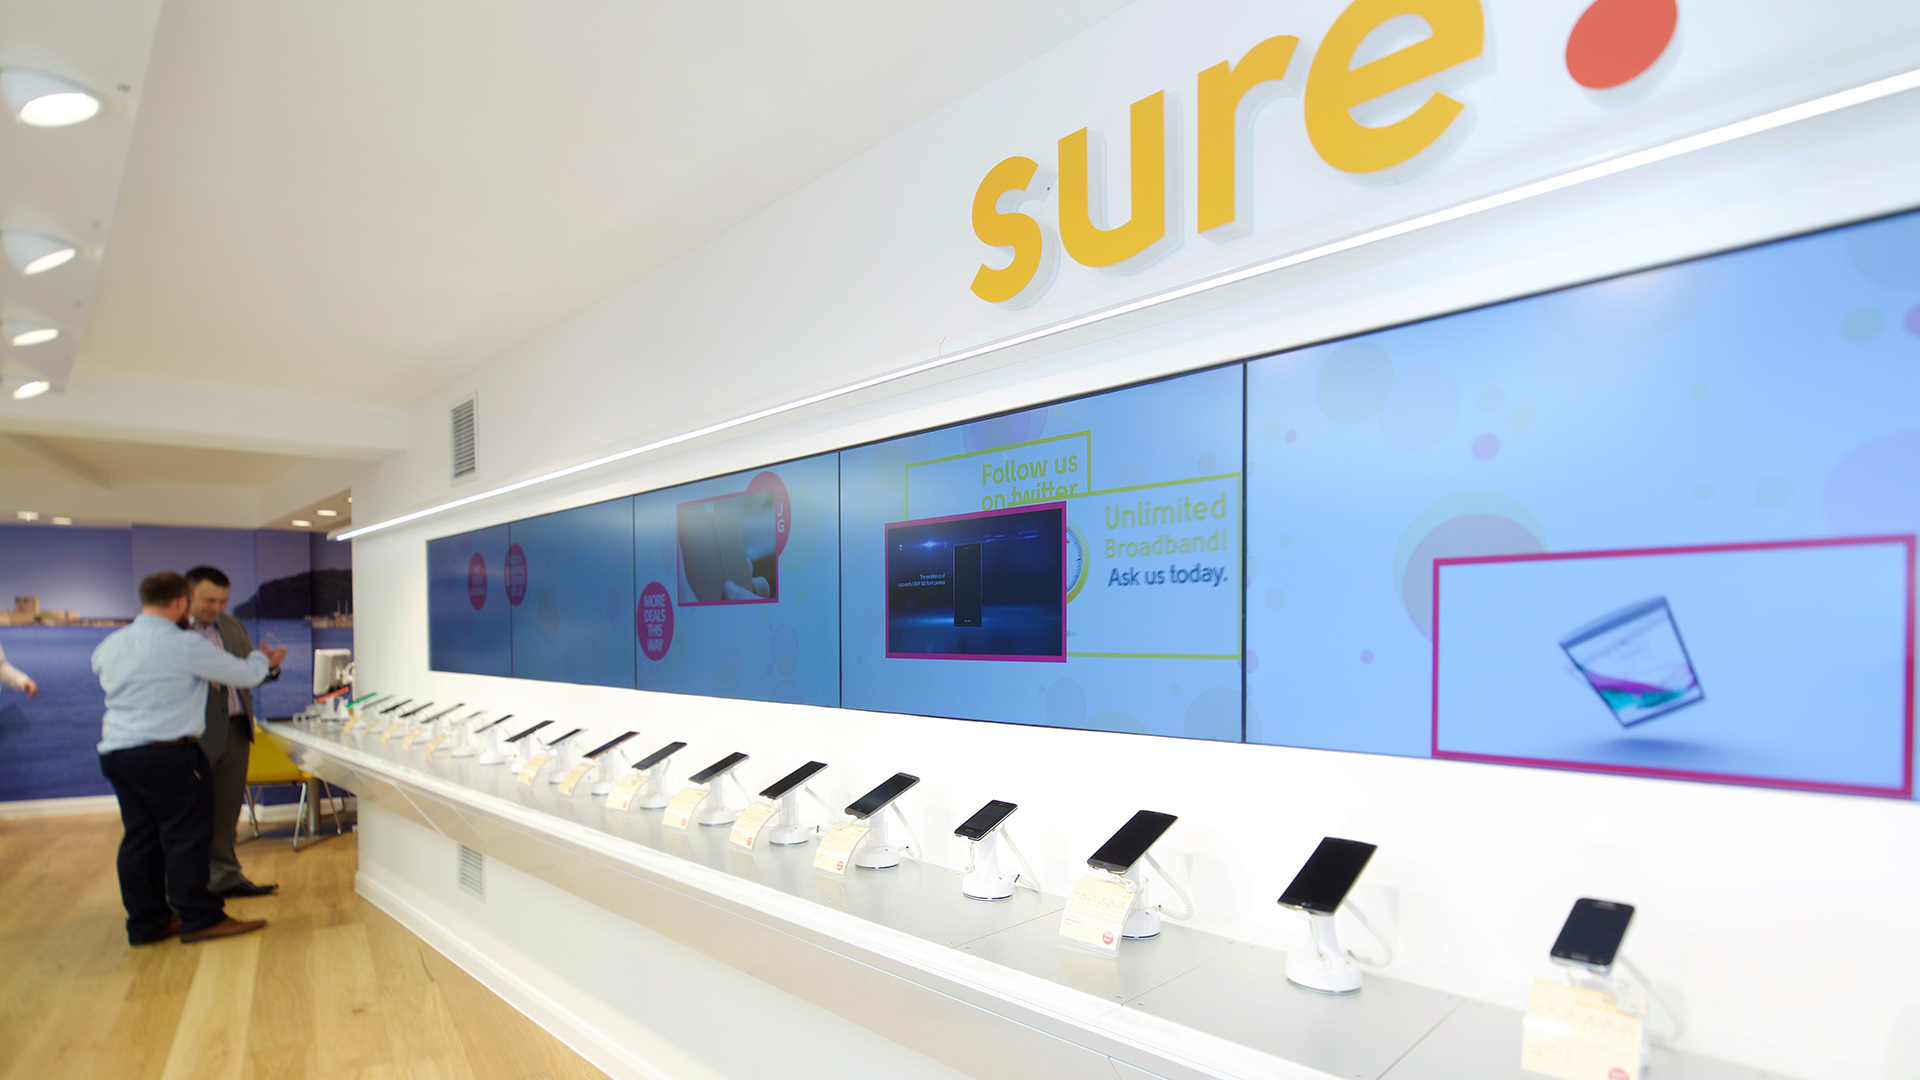 Channel Islands-based telecom company Sure International deployed a Matrox C-Series-powered signage video wall in one of its stores in St. Helier, Jersey.